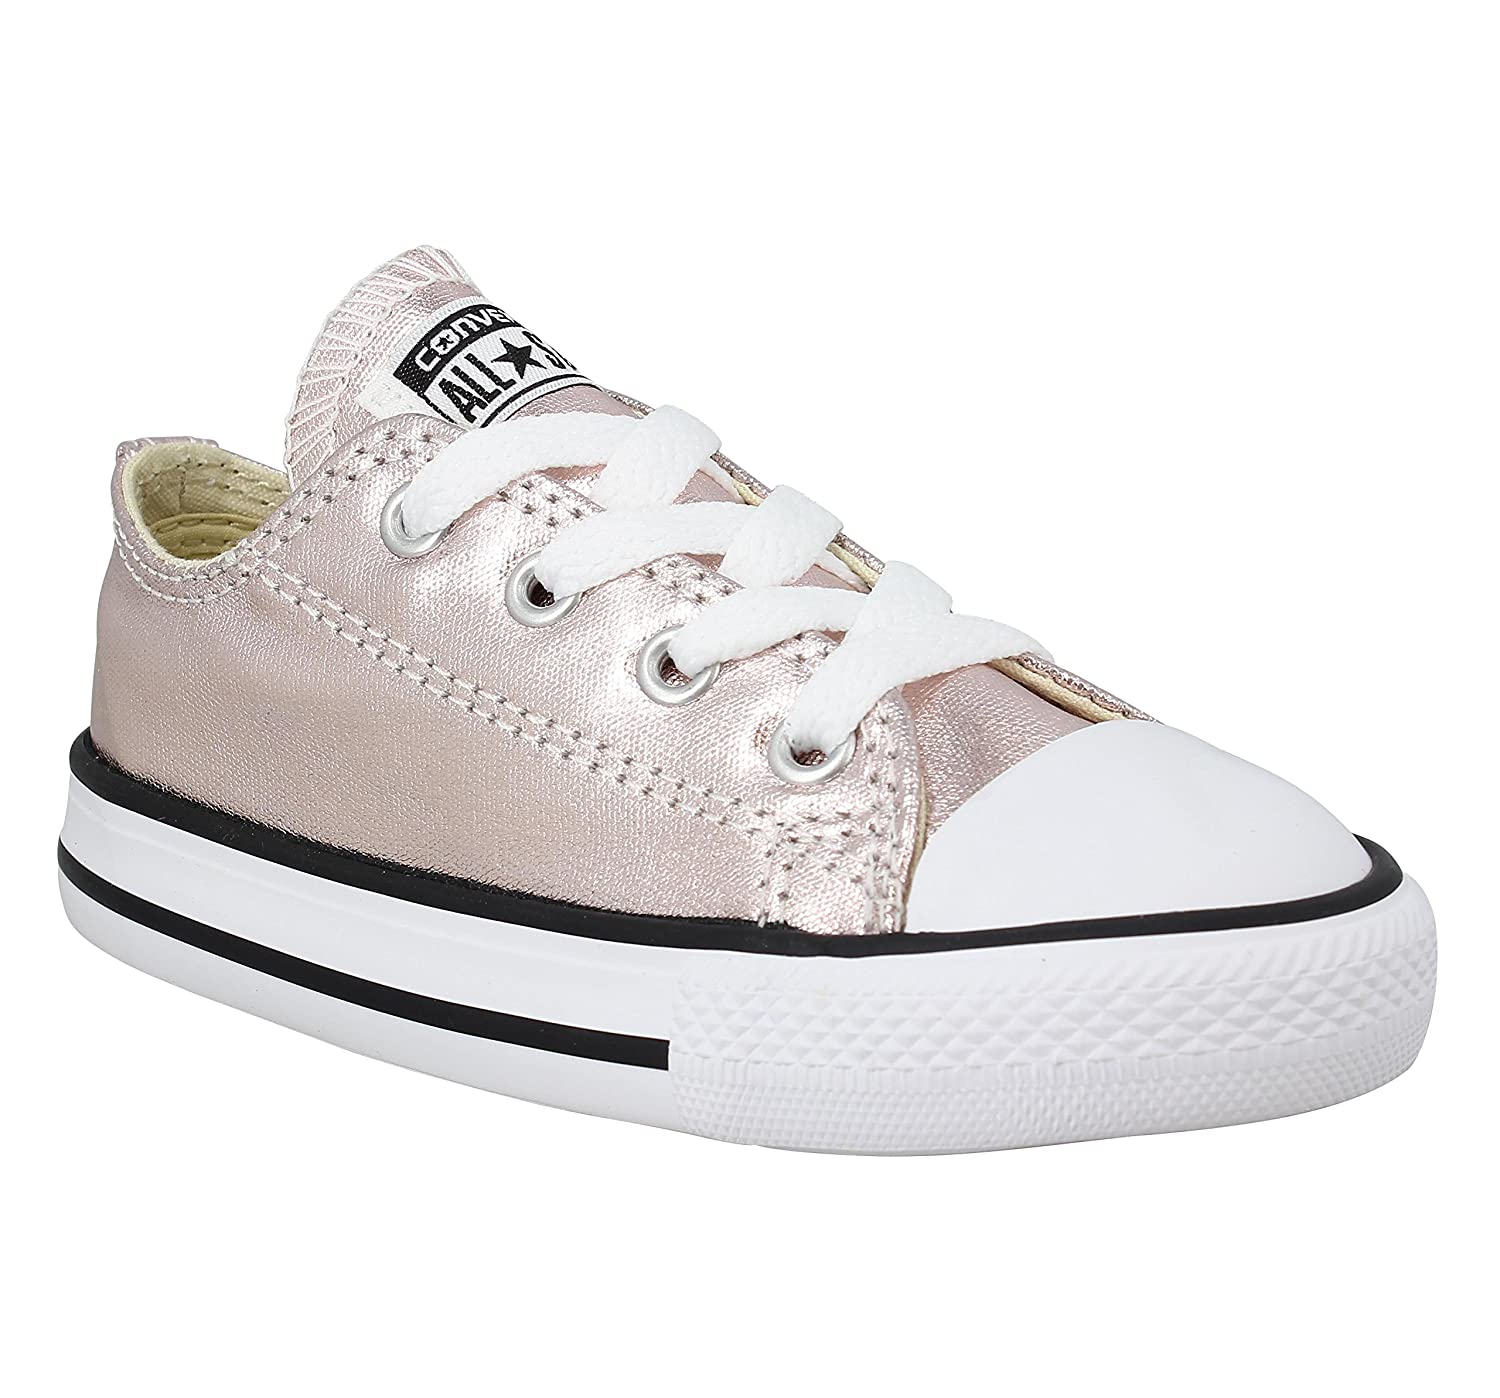 CONVERSE Designer Chucks Schuhe - ALL STAR -  31 EU|Rose Quartz/White/Black